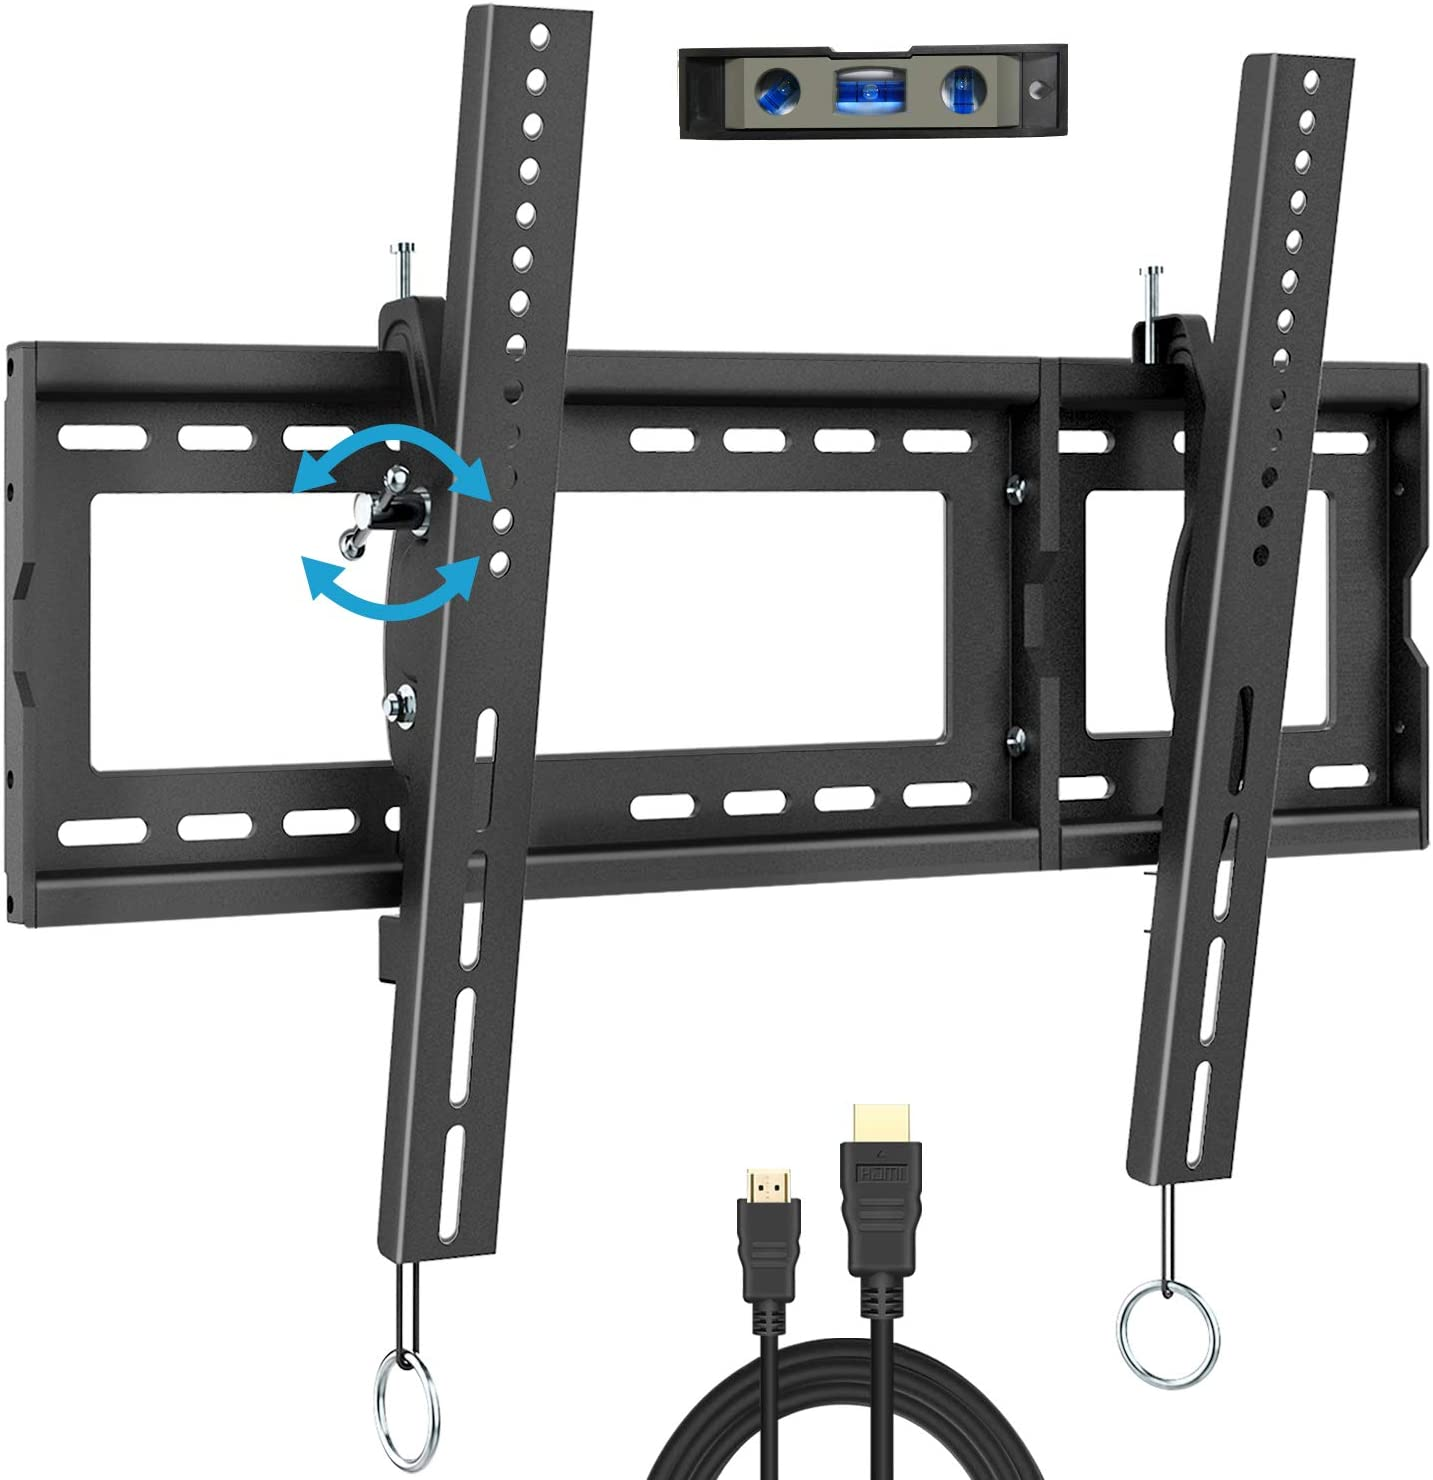 BLUE STONE Tilt TV Wall Mount Bracket, Mounting Bracket for Most 32-80 Inches LED, LCD, OLED, Plasma Flat Screen, Curved TVs, Fits 16